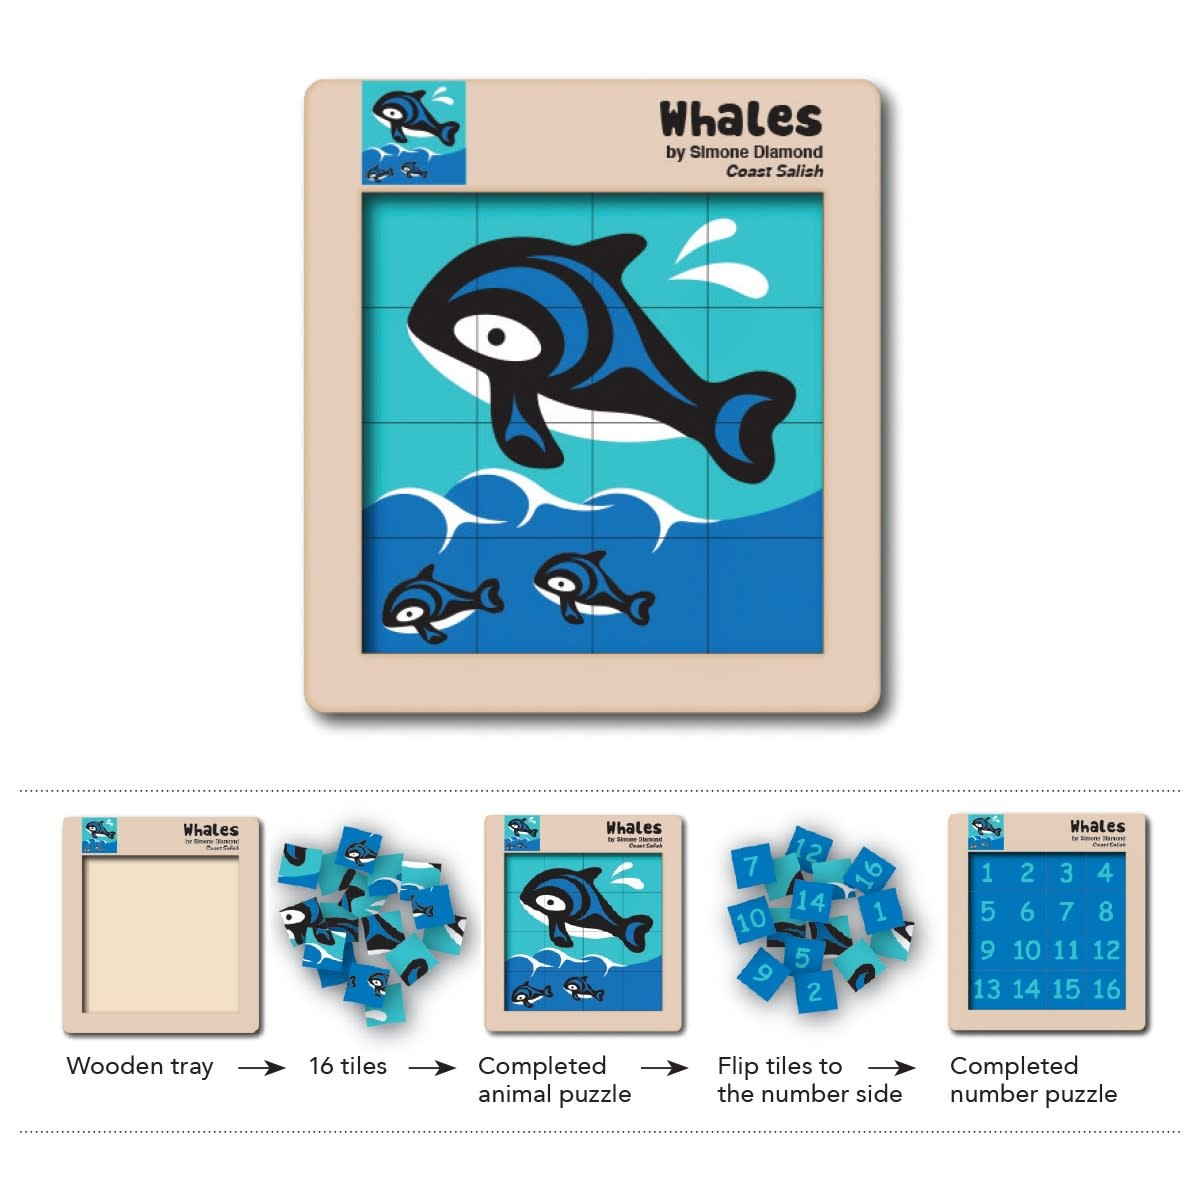 Double Sided Wooden Puzzle - Whales-1